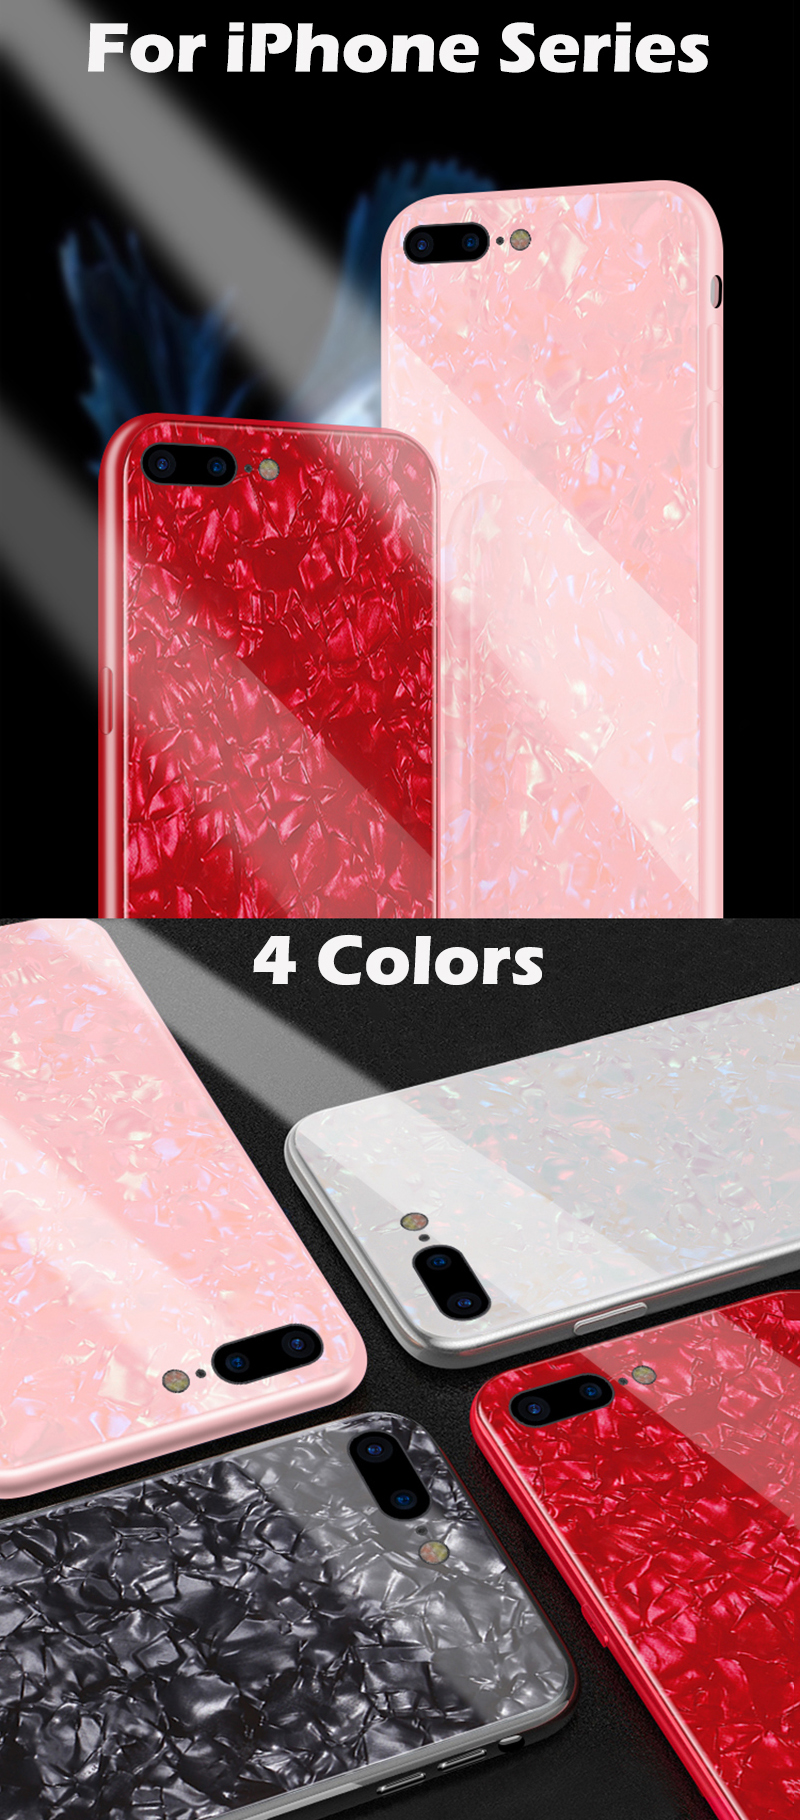 KIP7P1236_9_JONSNOW Tempered Glass Case For iPhone 6S 7 8 Plus Glossy Hard Back Cover Soft Silicone Edge for iPhone XS XR XS Max Phone Case